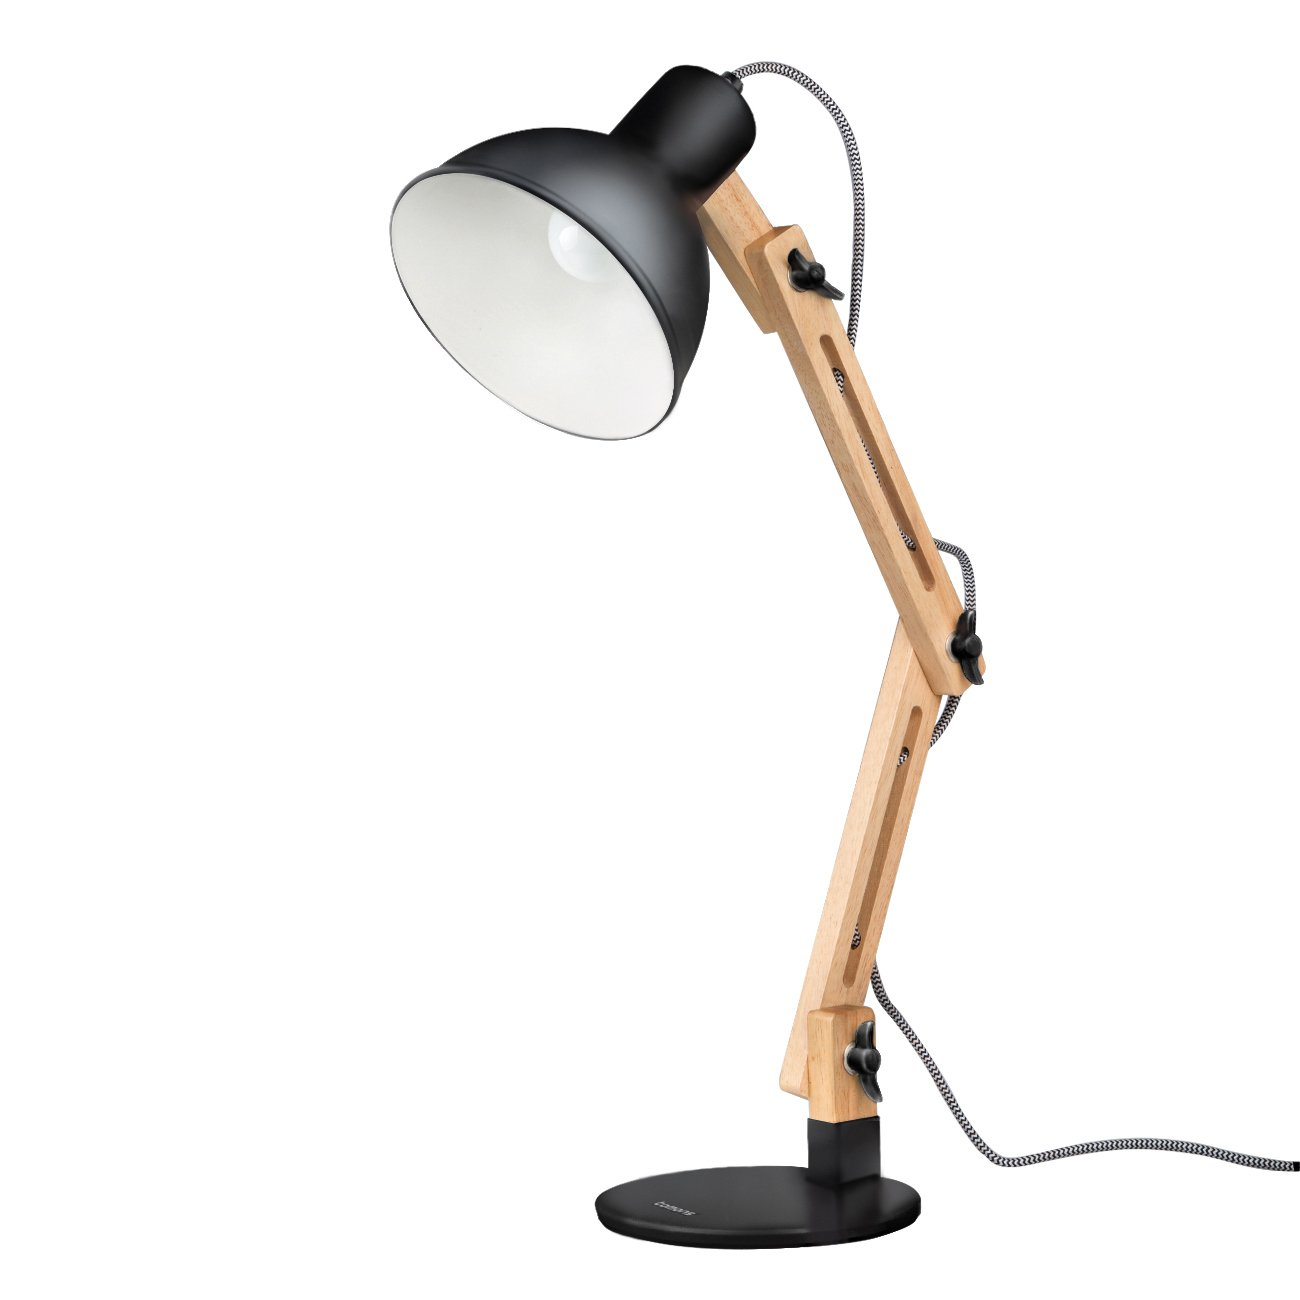 Tomons Scandinavian Swing Arm Wood Desk Lamp, Black 0